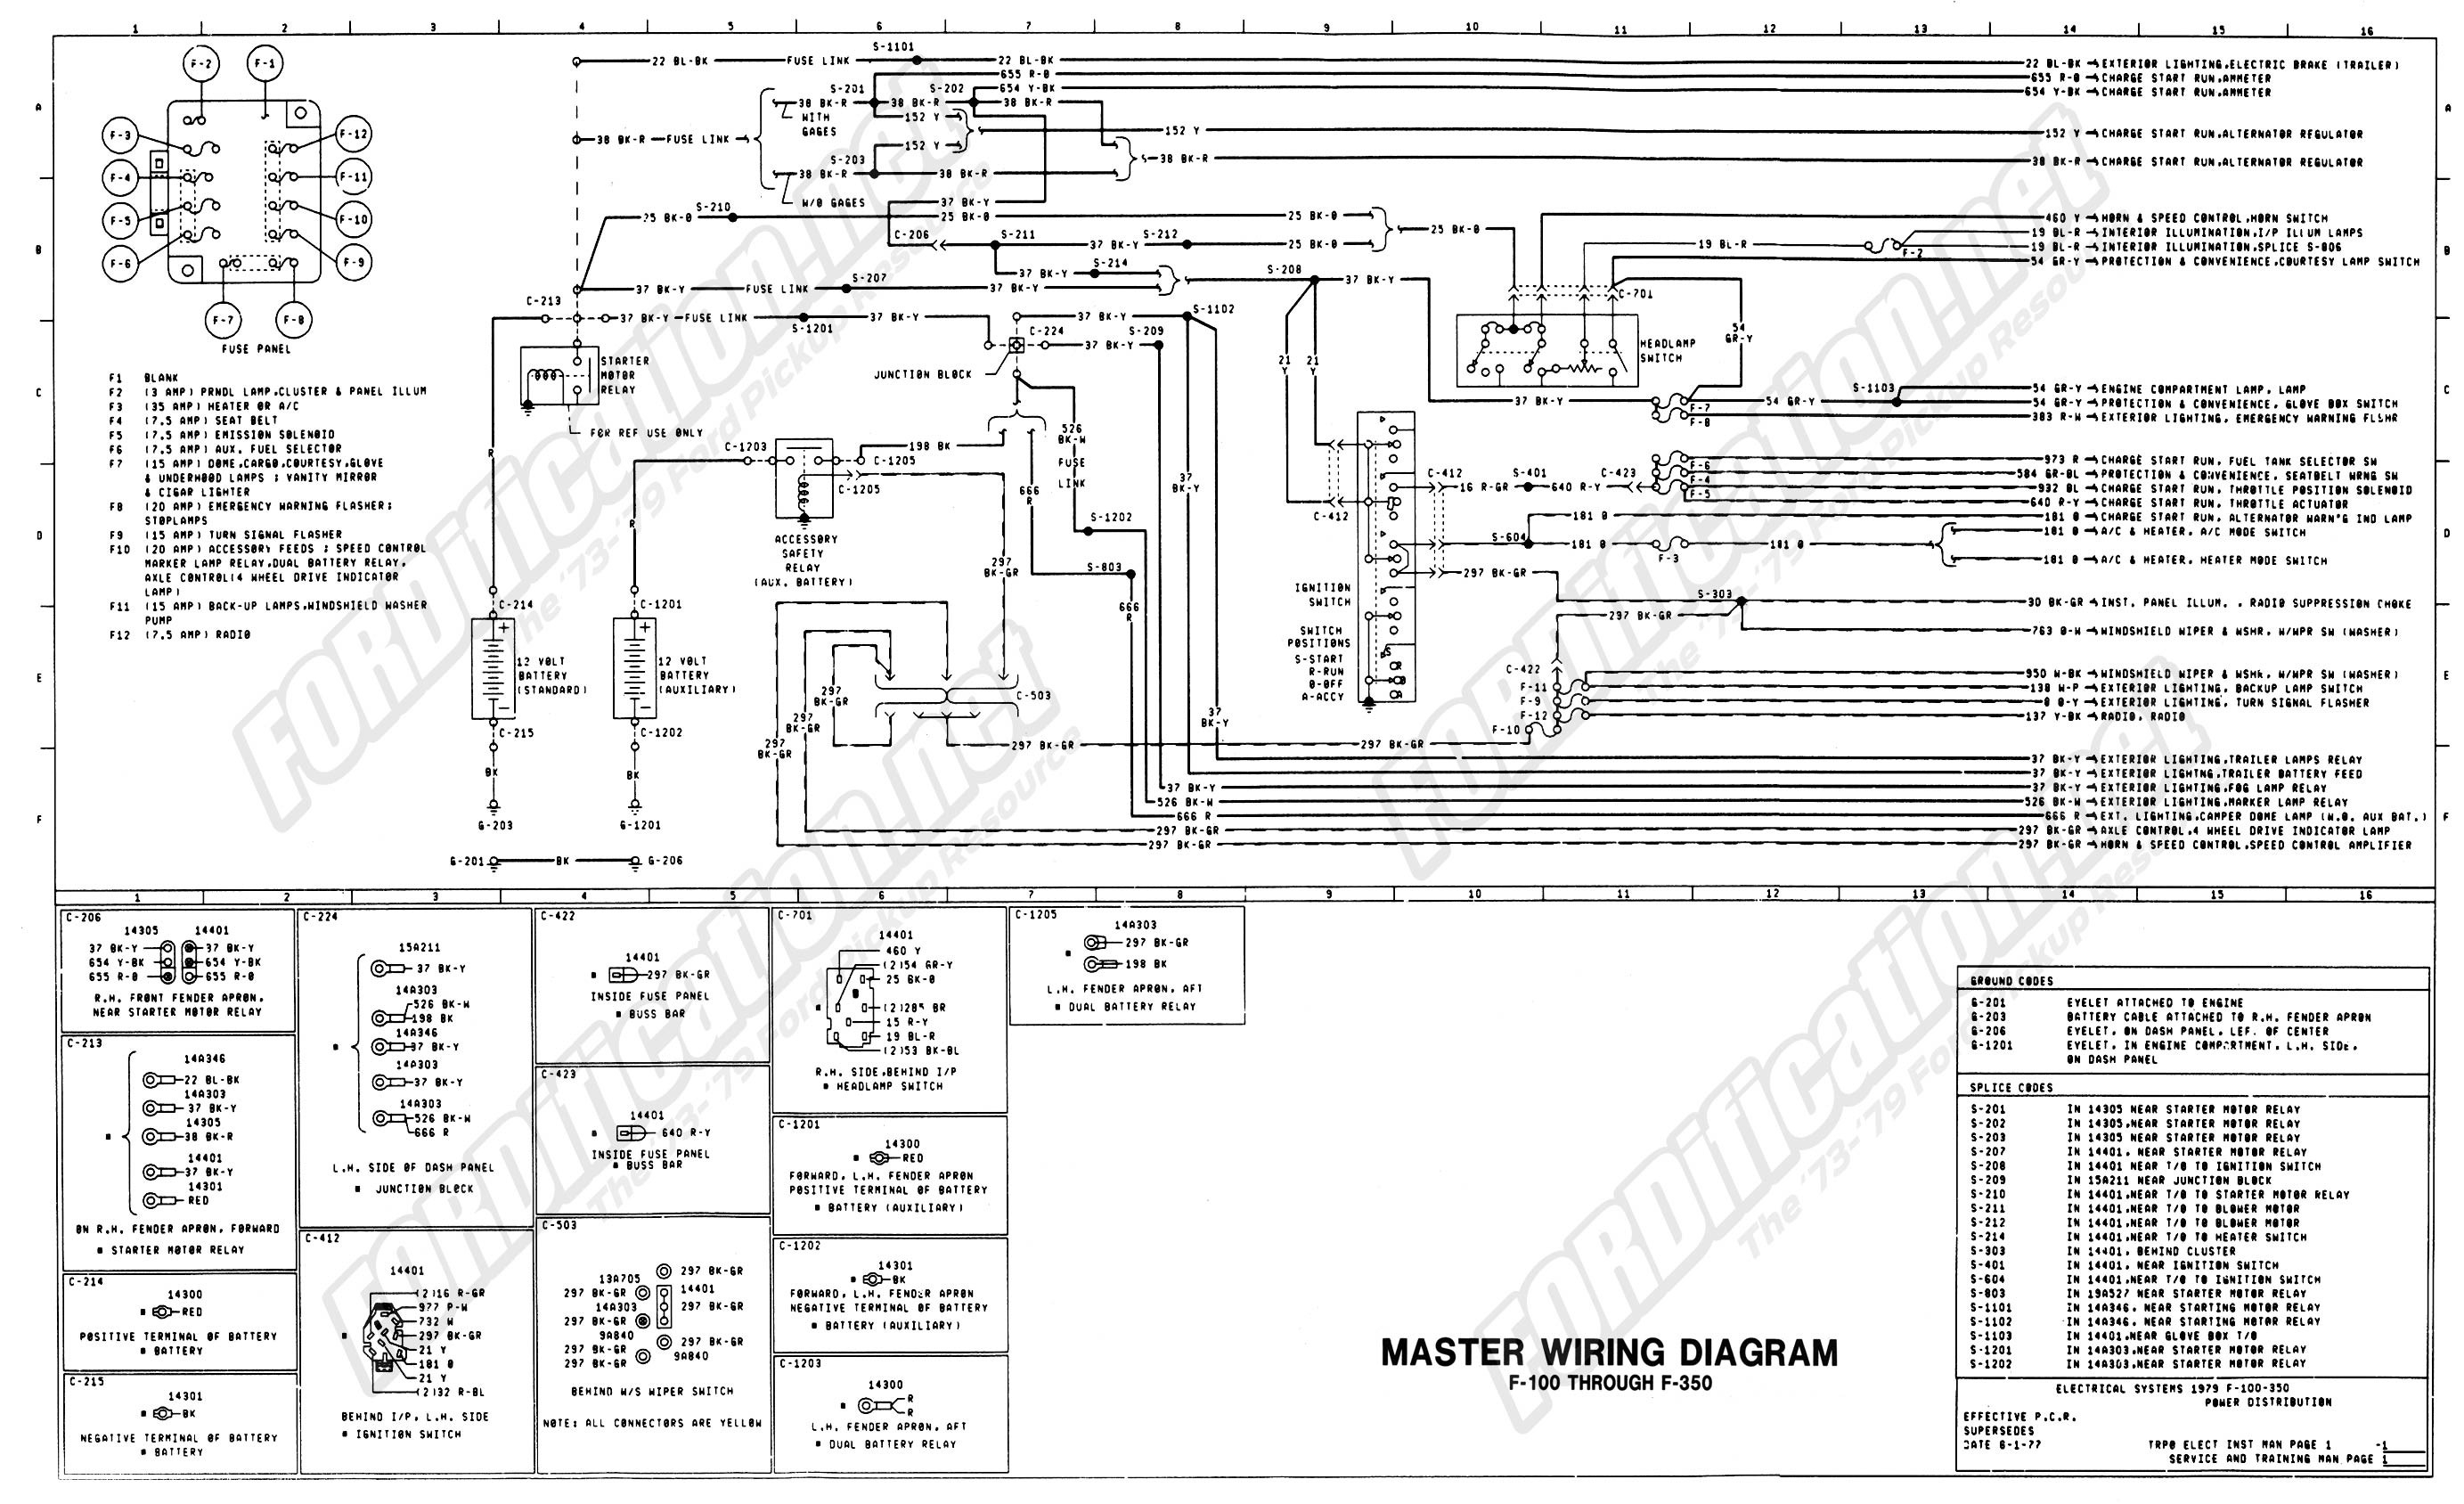 2000 F250 Headlight Switch Wiring Diagram | Free Wiring ...